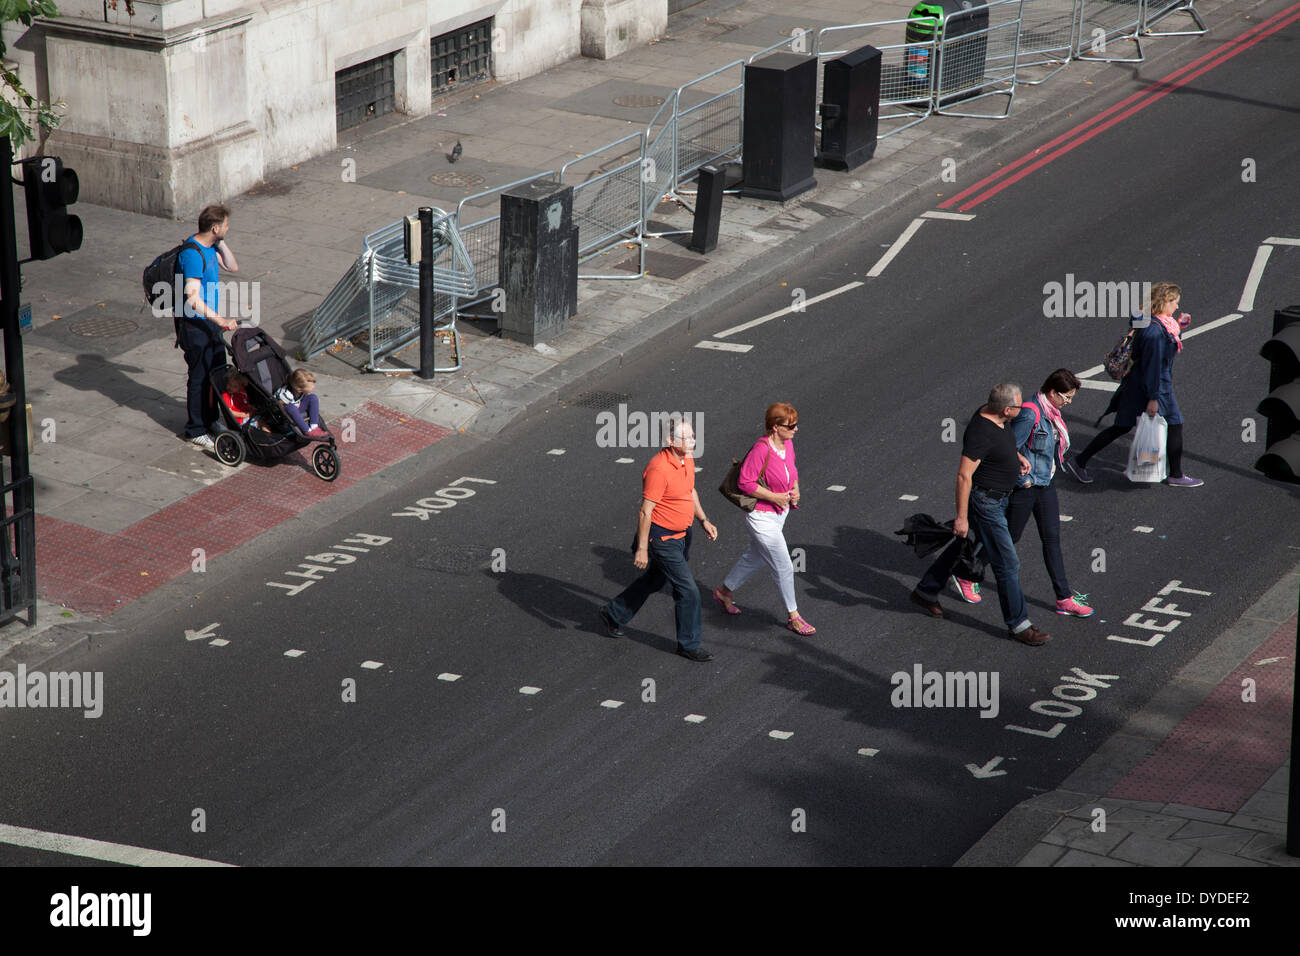 Pedestrians crossing traffic light controlled road crossing. - Stock Image